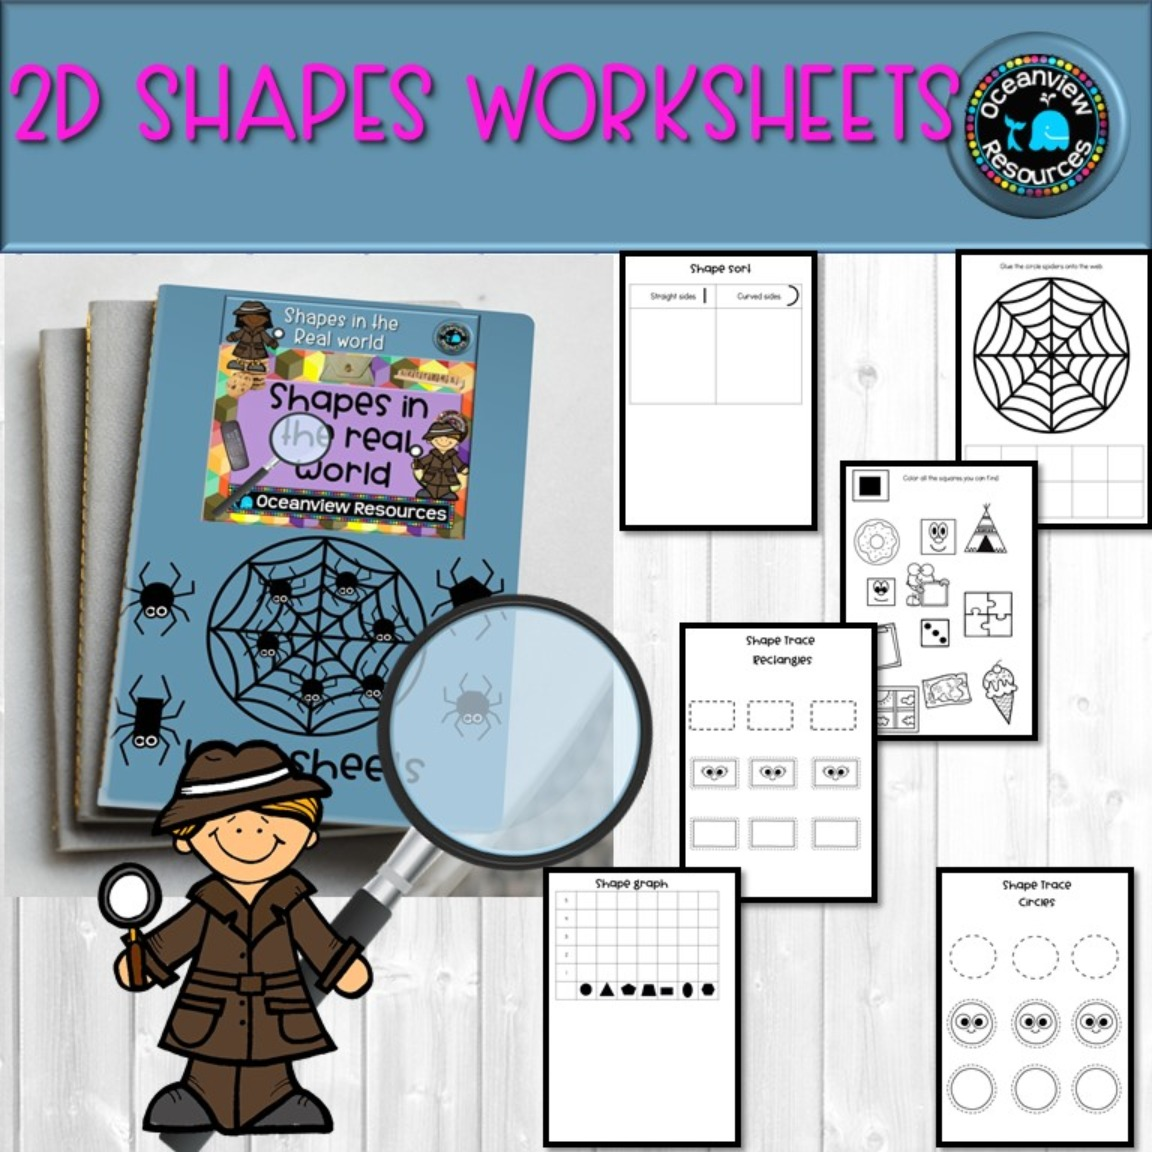 2D worksheets - UK and AUS/UK spelling PDF and POWERPOINT version